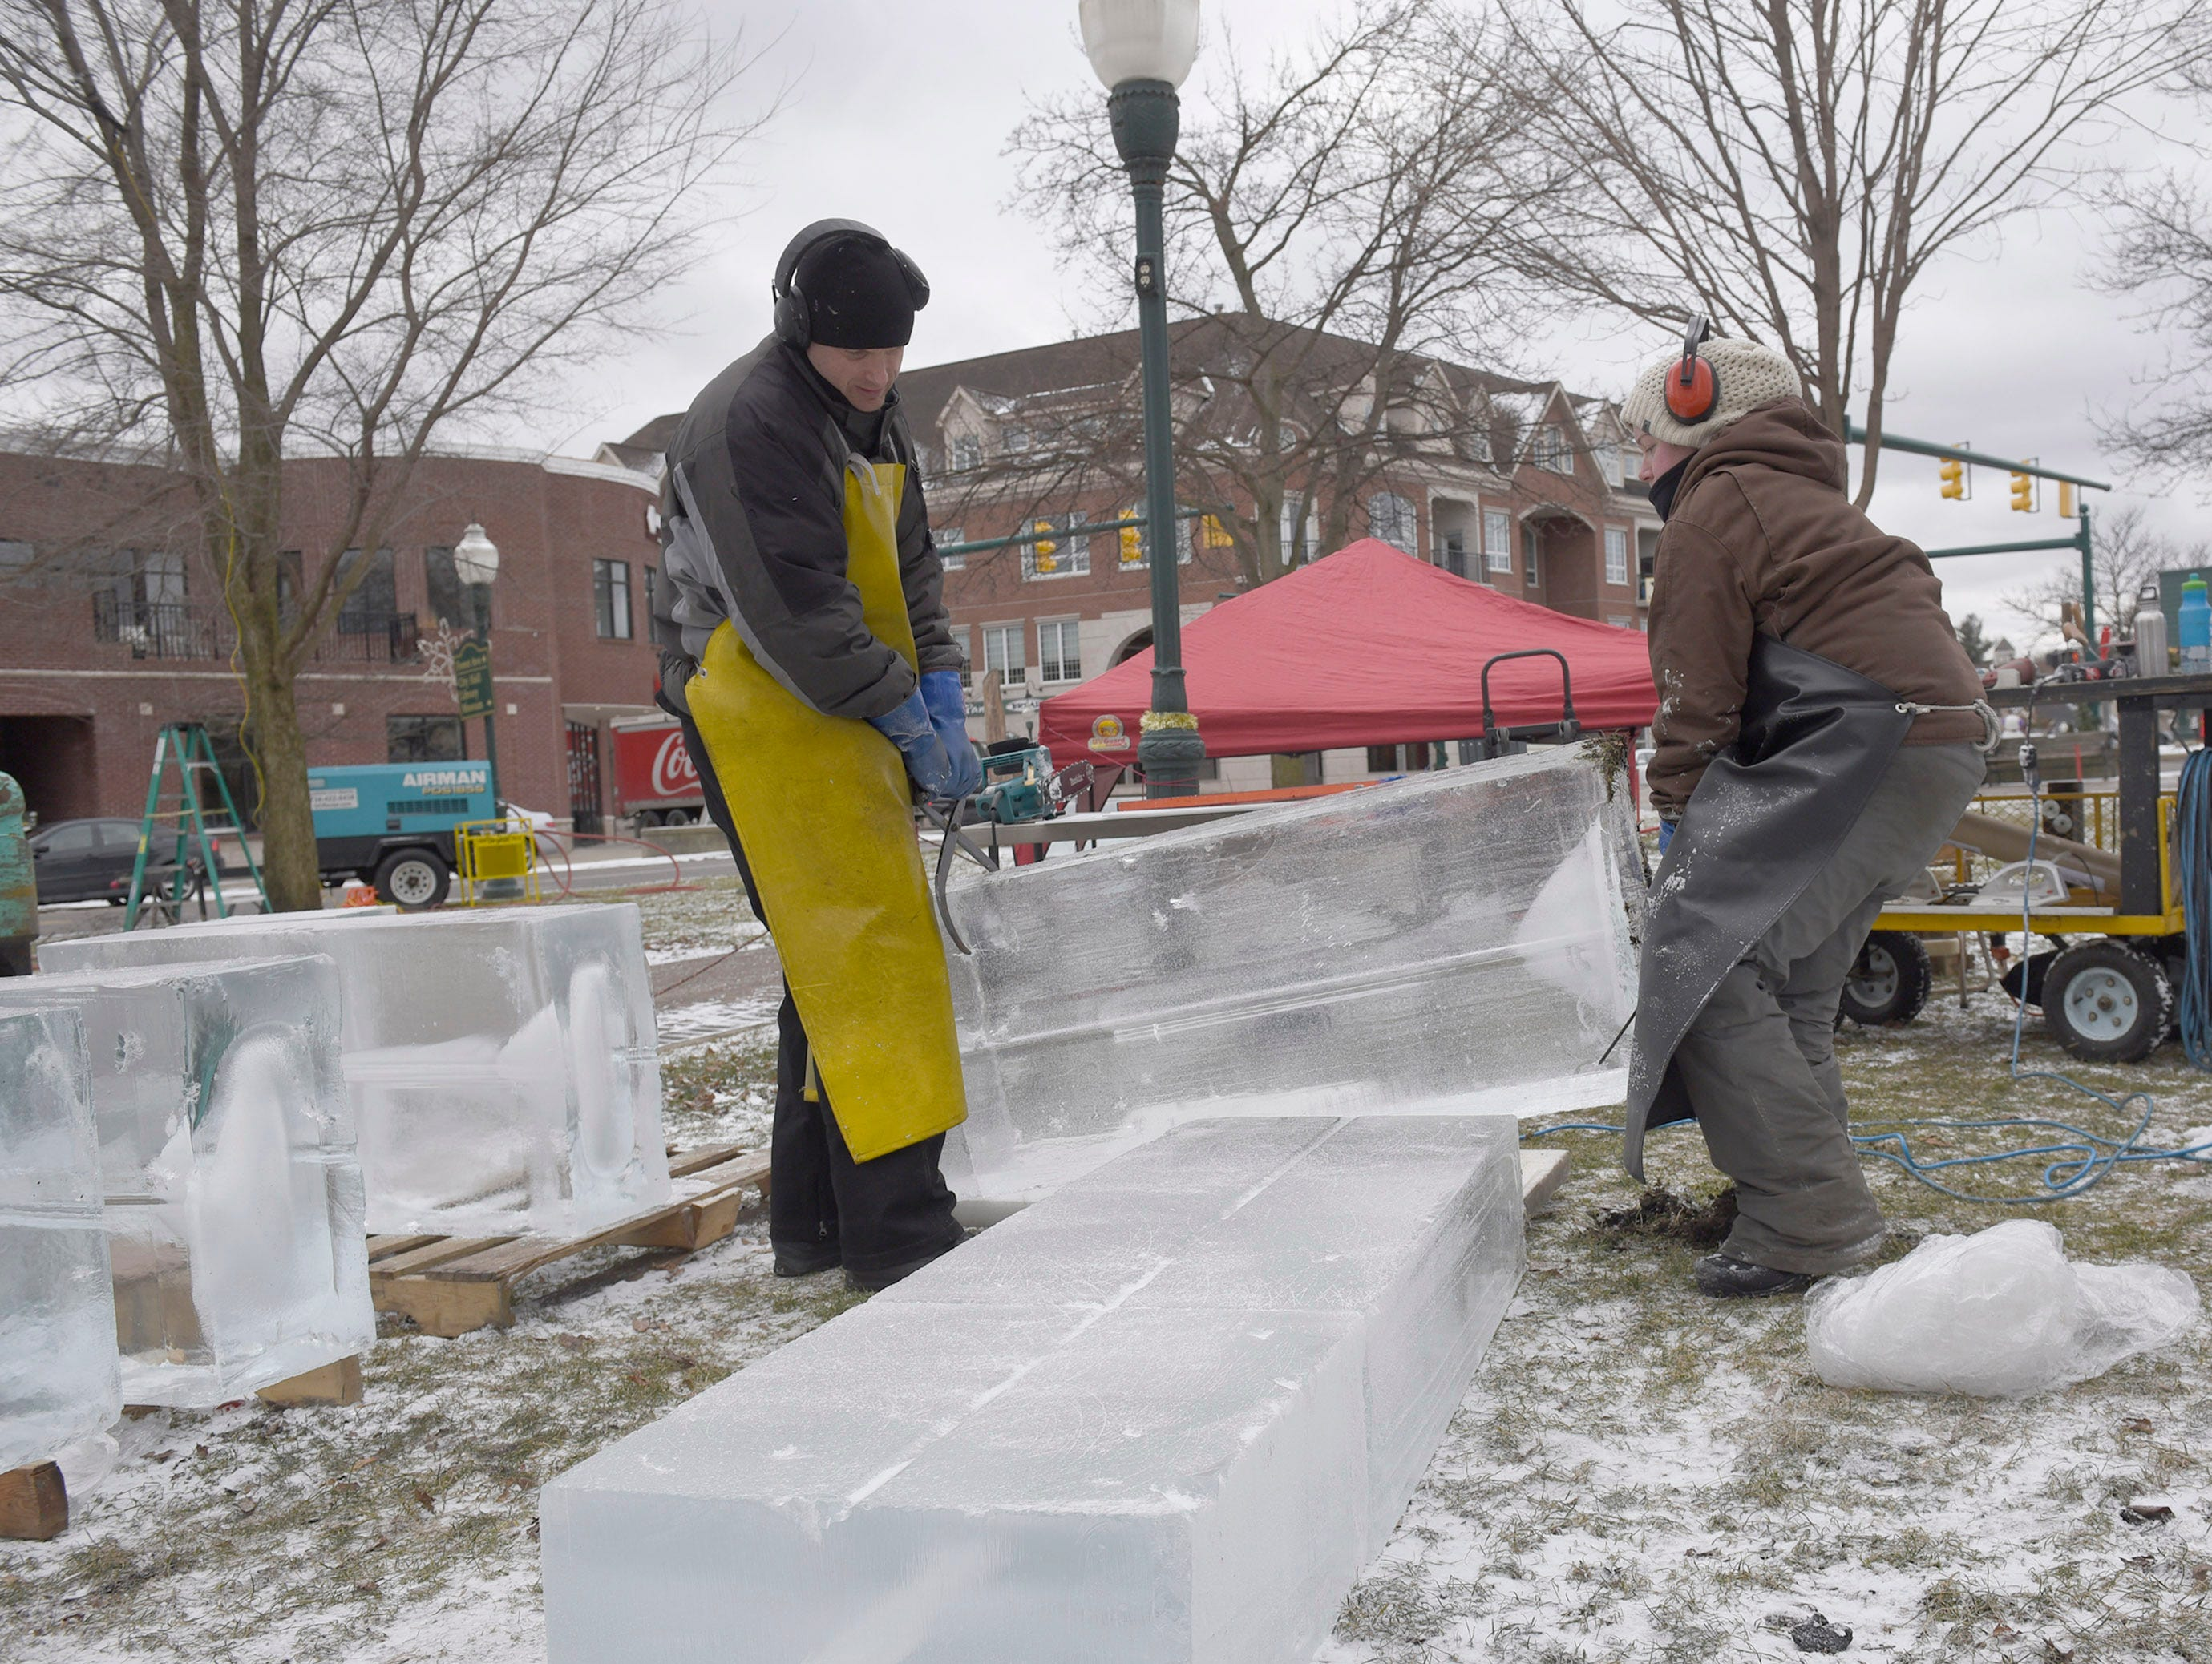 Clinton Rich (left) and Lauren Klapar set blocks of ice for sculptures that will featured during the Plymouth Ice Festival that runs Jan. 11-13.